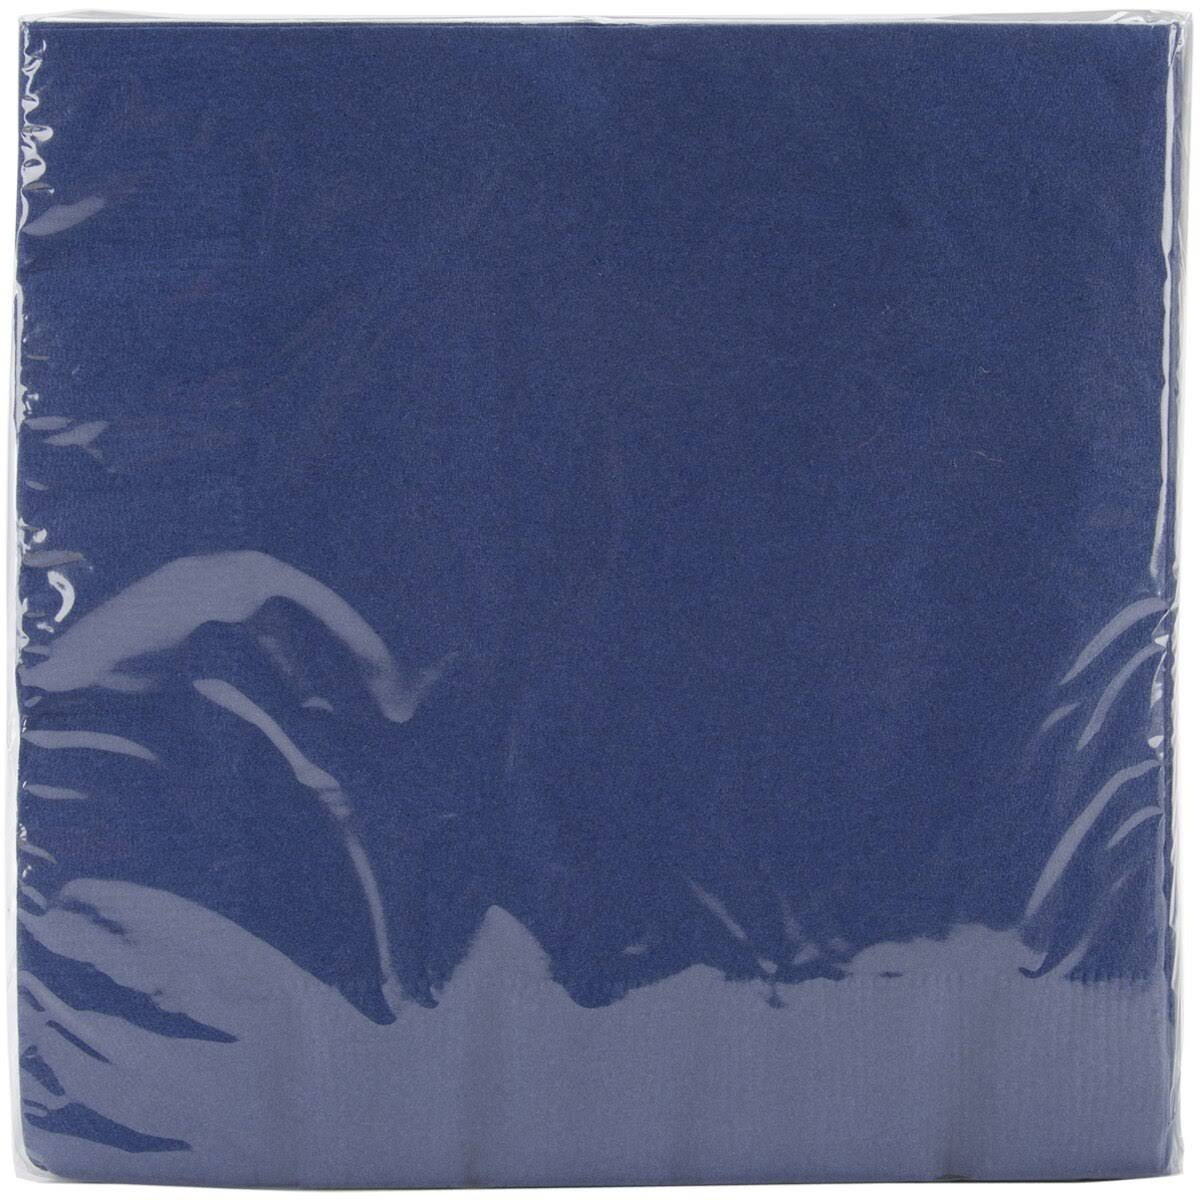 "Creative Converting Luncheon Napkins - Navy, 6.5"" x 6.5"", 50pk"